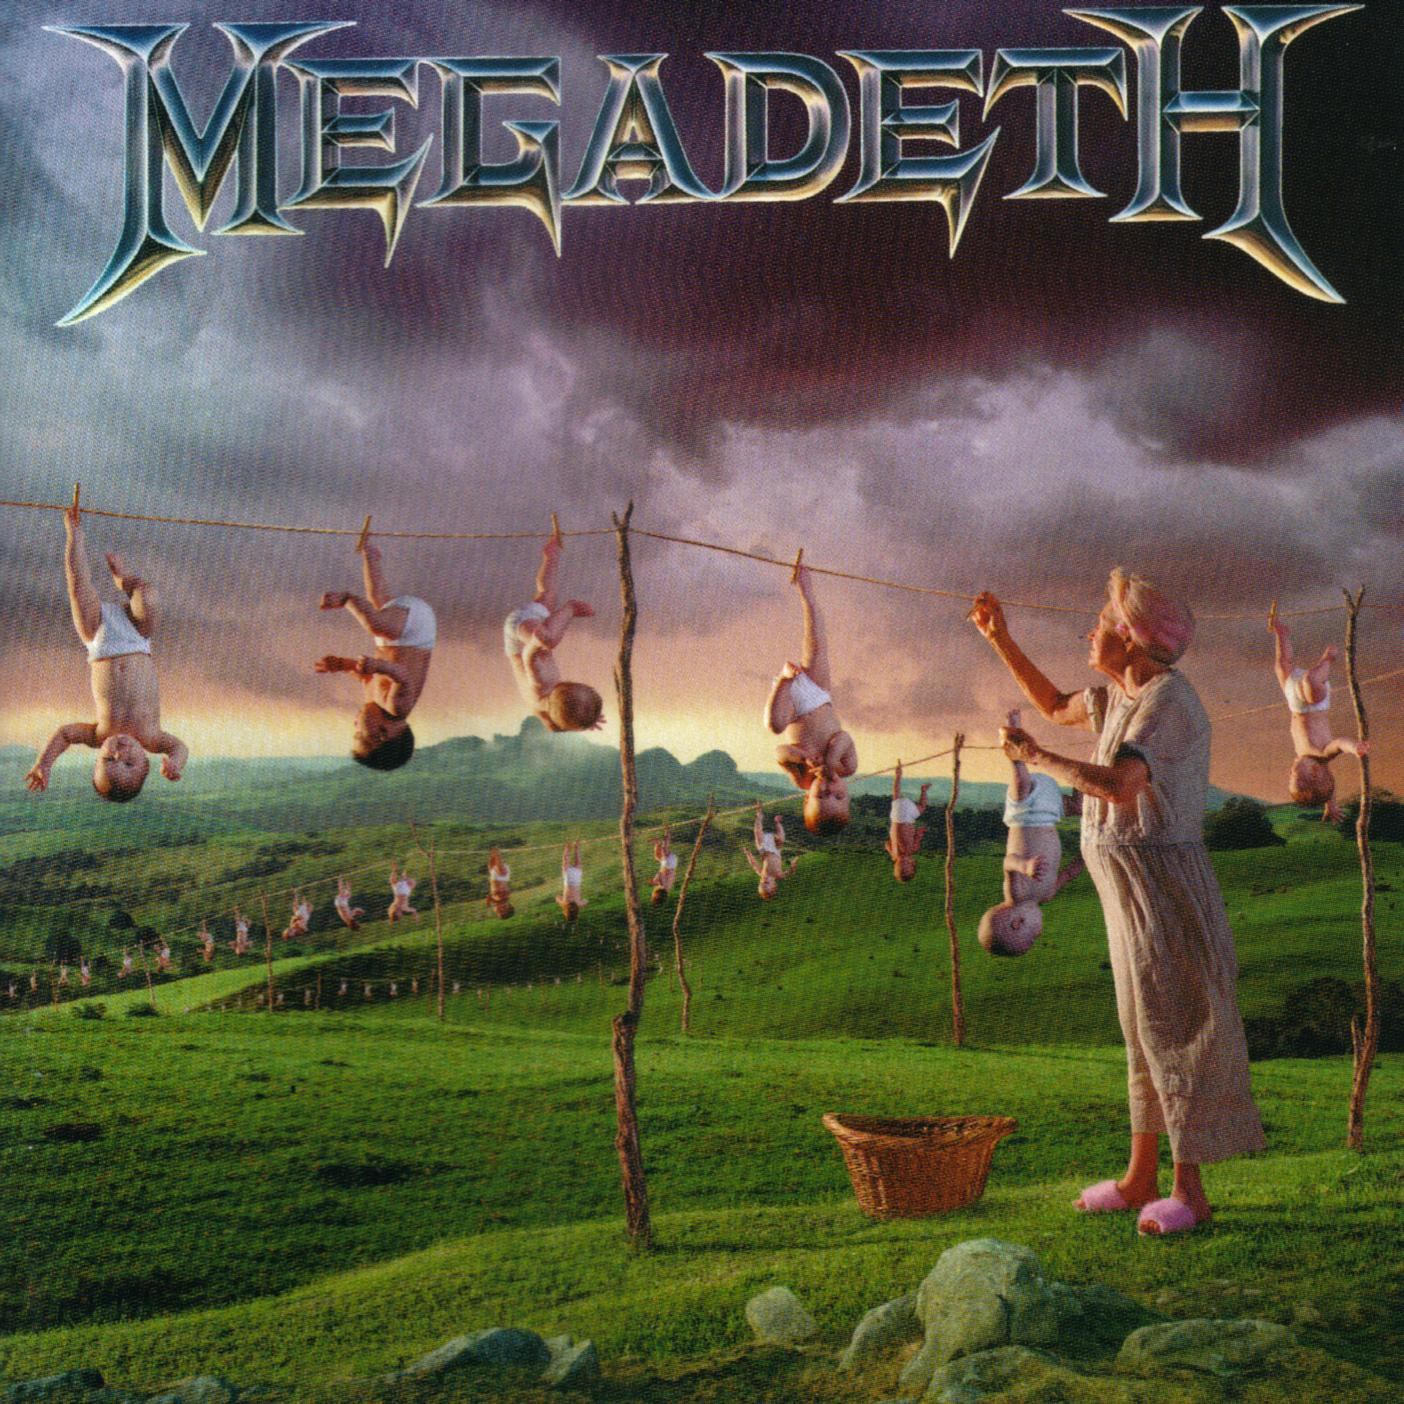 MEGADETH - Youthanasia cover